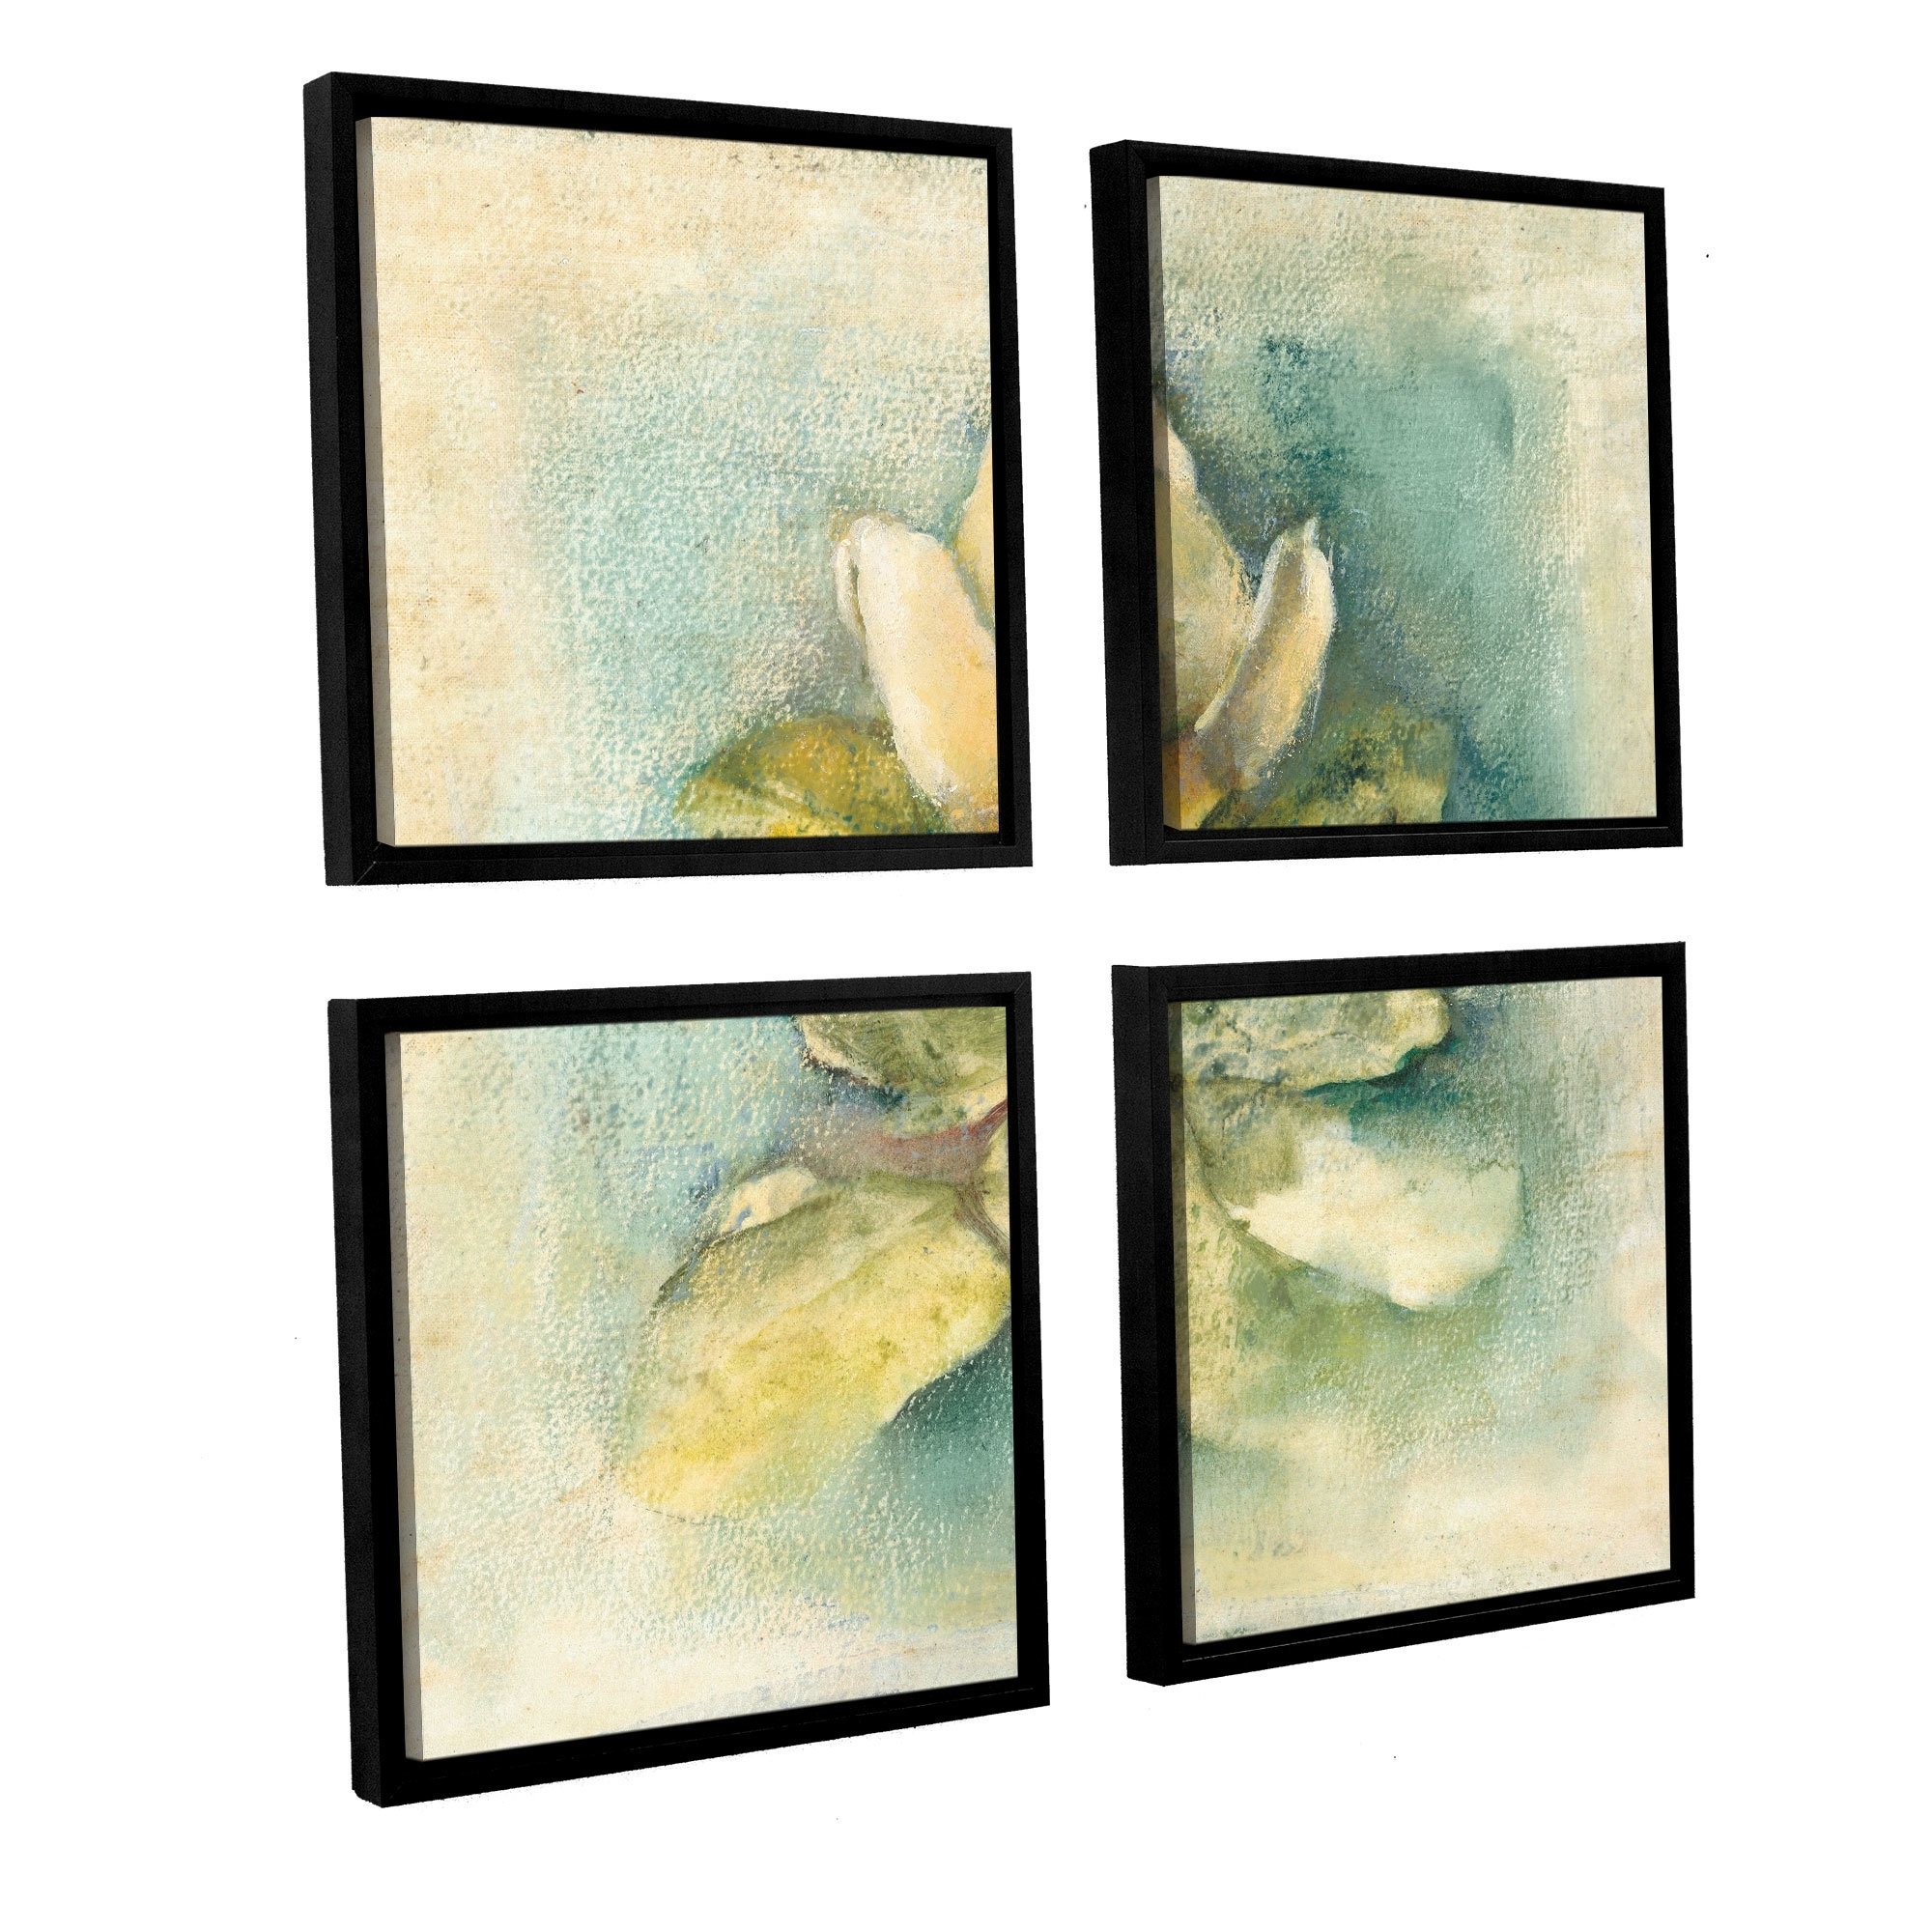 Artwall 'french Magnolia'cheri Blum 4 Piece Framed Painting Within Most Recent Cheri Blum Framed Art Prints (View 13 of 15)